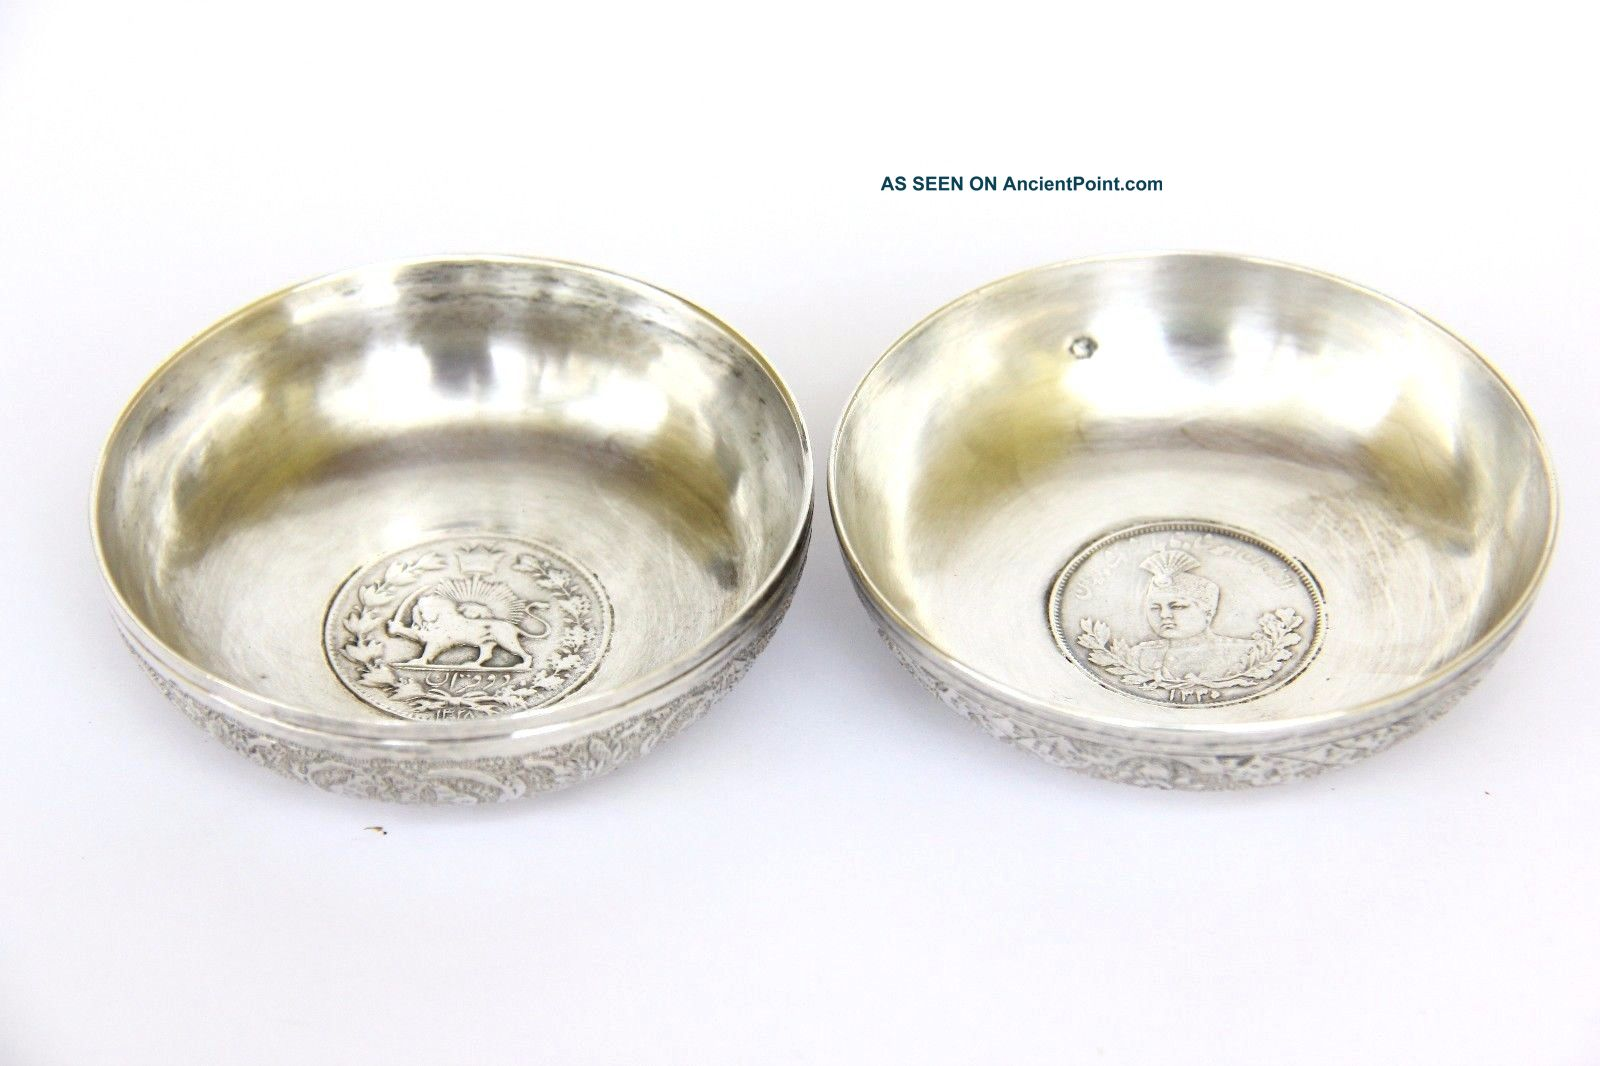 Antique Pair Persian Islamic Solid Silver Wine Taster Dinar Coin Bowls Dish 104g Middle East photo